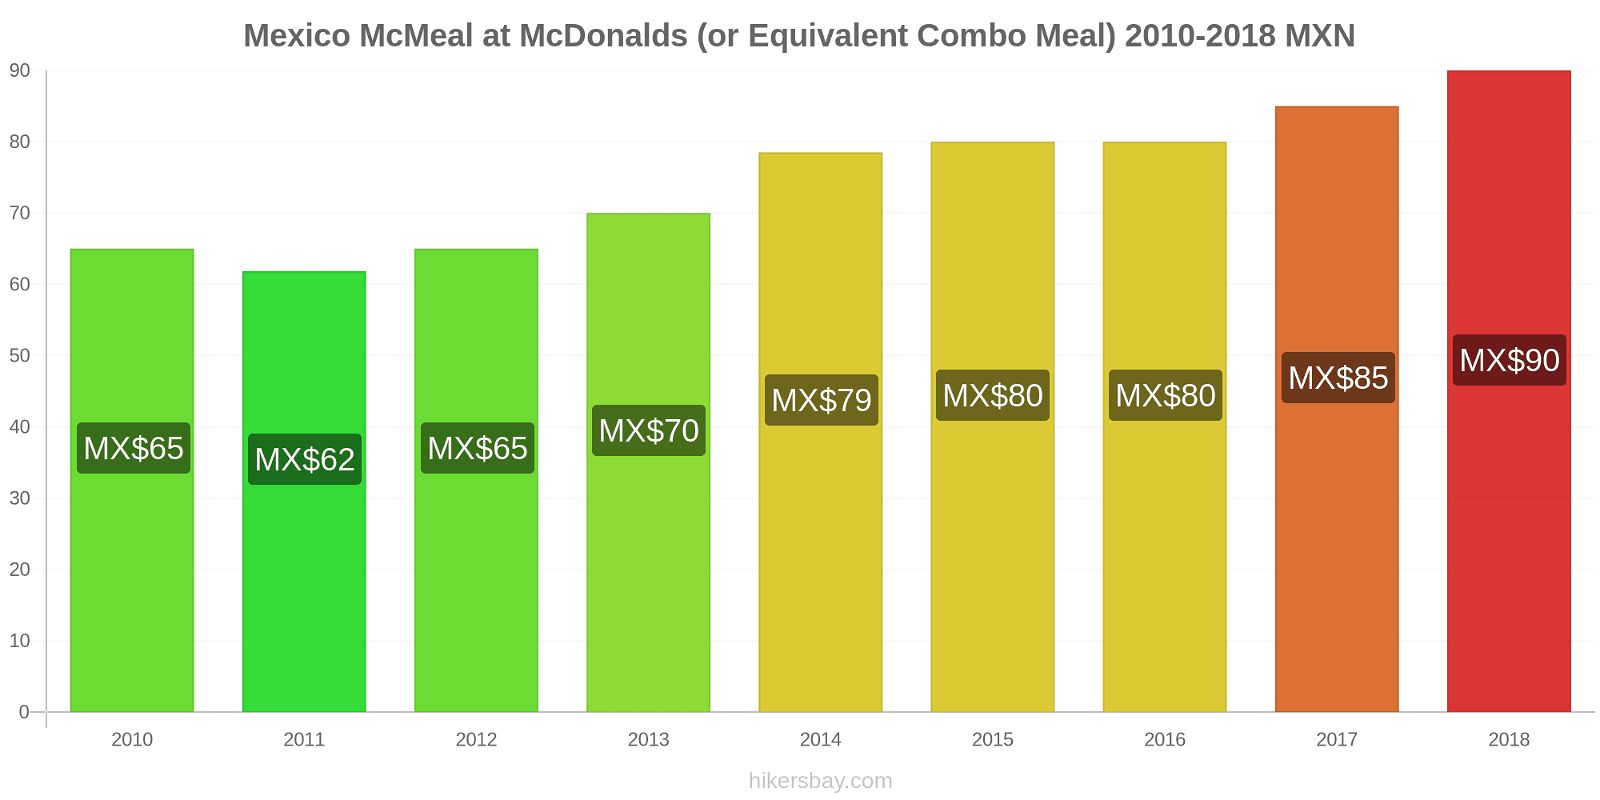 Mexico price changes McMeal at McDonalds (or Equivalent Combo Meal) hikersbay.com